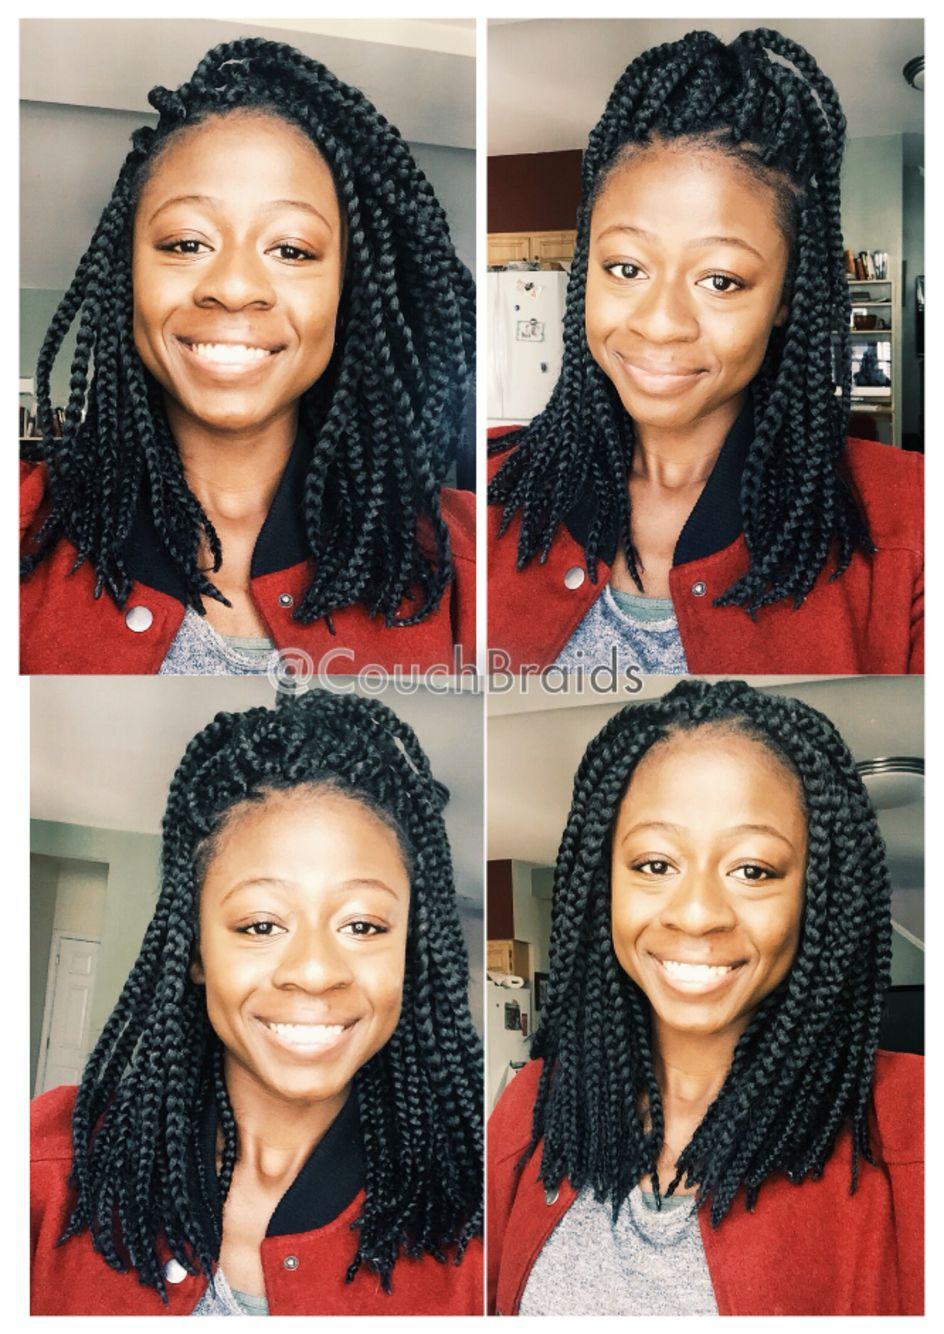 Medium Length Box Braids By Annie Couchbraids Couchbraids Bob Box Braids Box Braids Styling Braided Hairstyles Box Braids Hairstyles